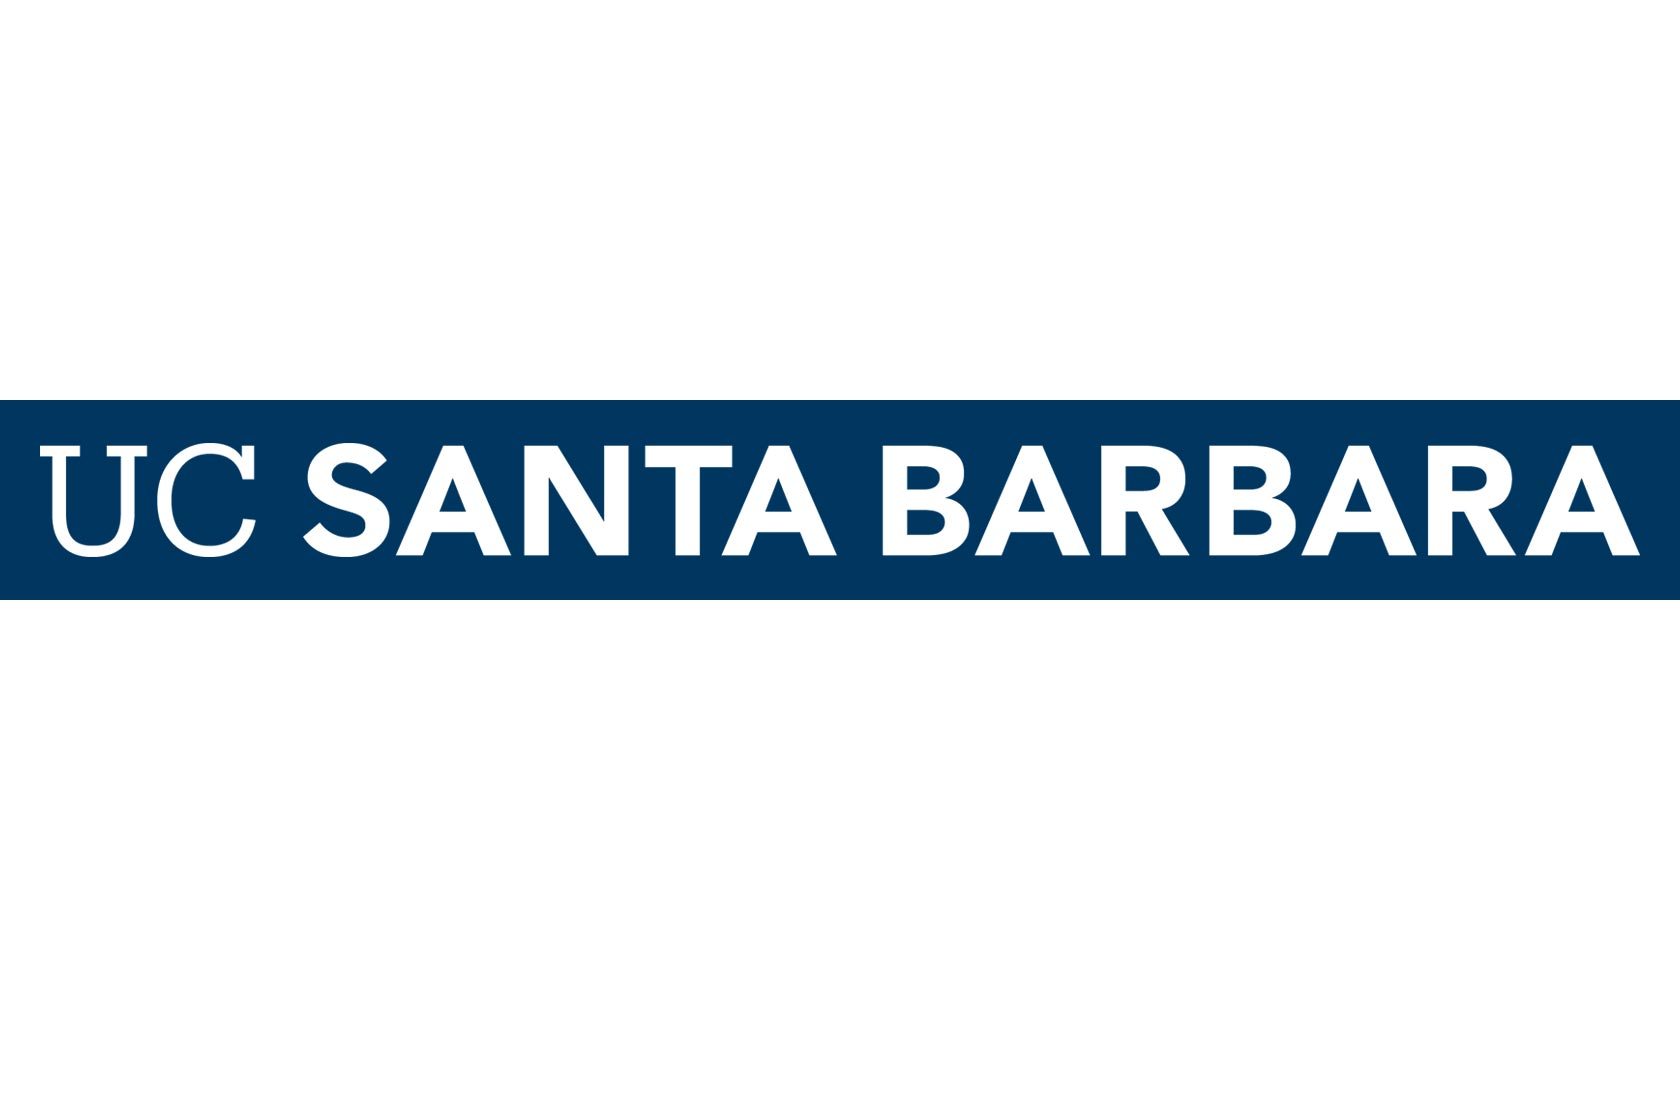 UC Santa Barbara wordmark reversed